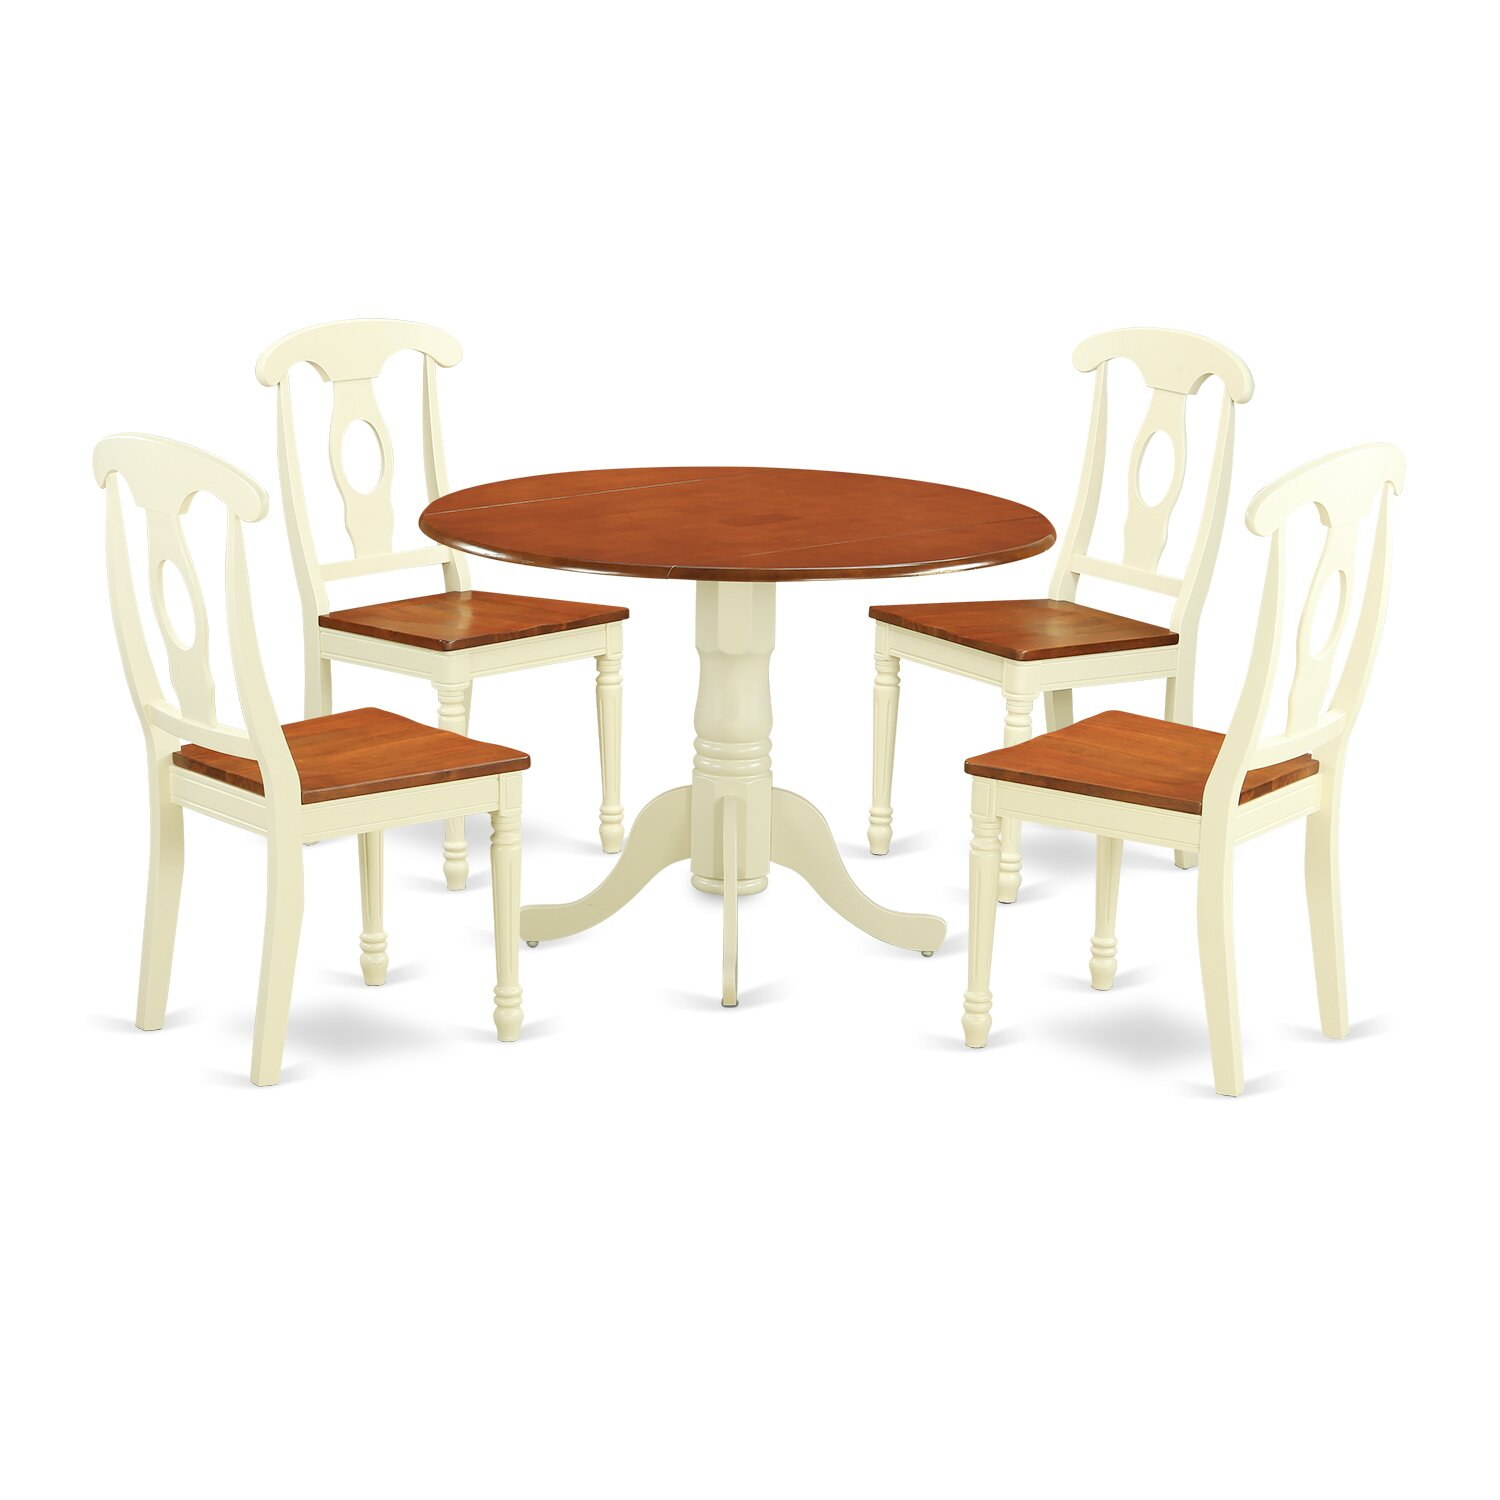 PC Dining Set Dining Table And 4 Dining Chairs DLKE5 BMK